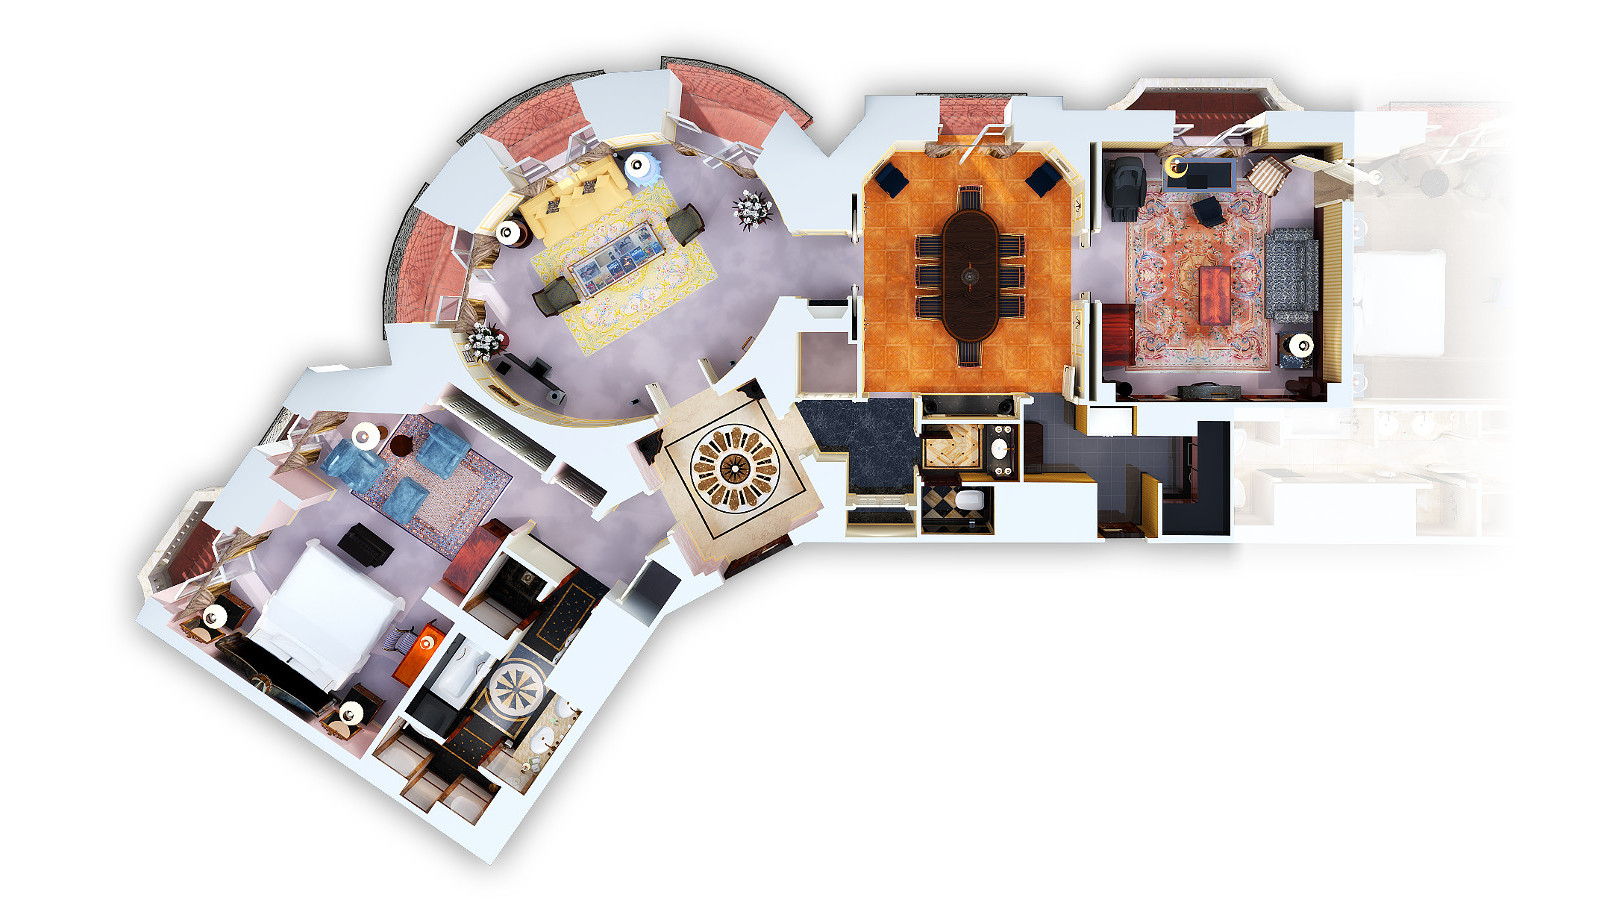 THE ROYAL SUITE 3D FLOOR PLAN (CONNECTING ROOM AVAILABLE)